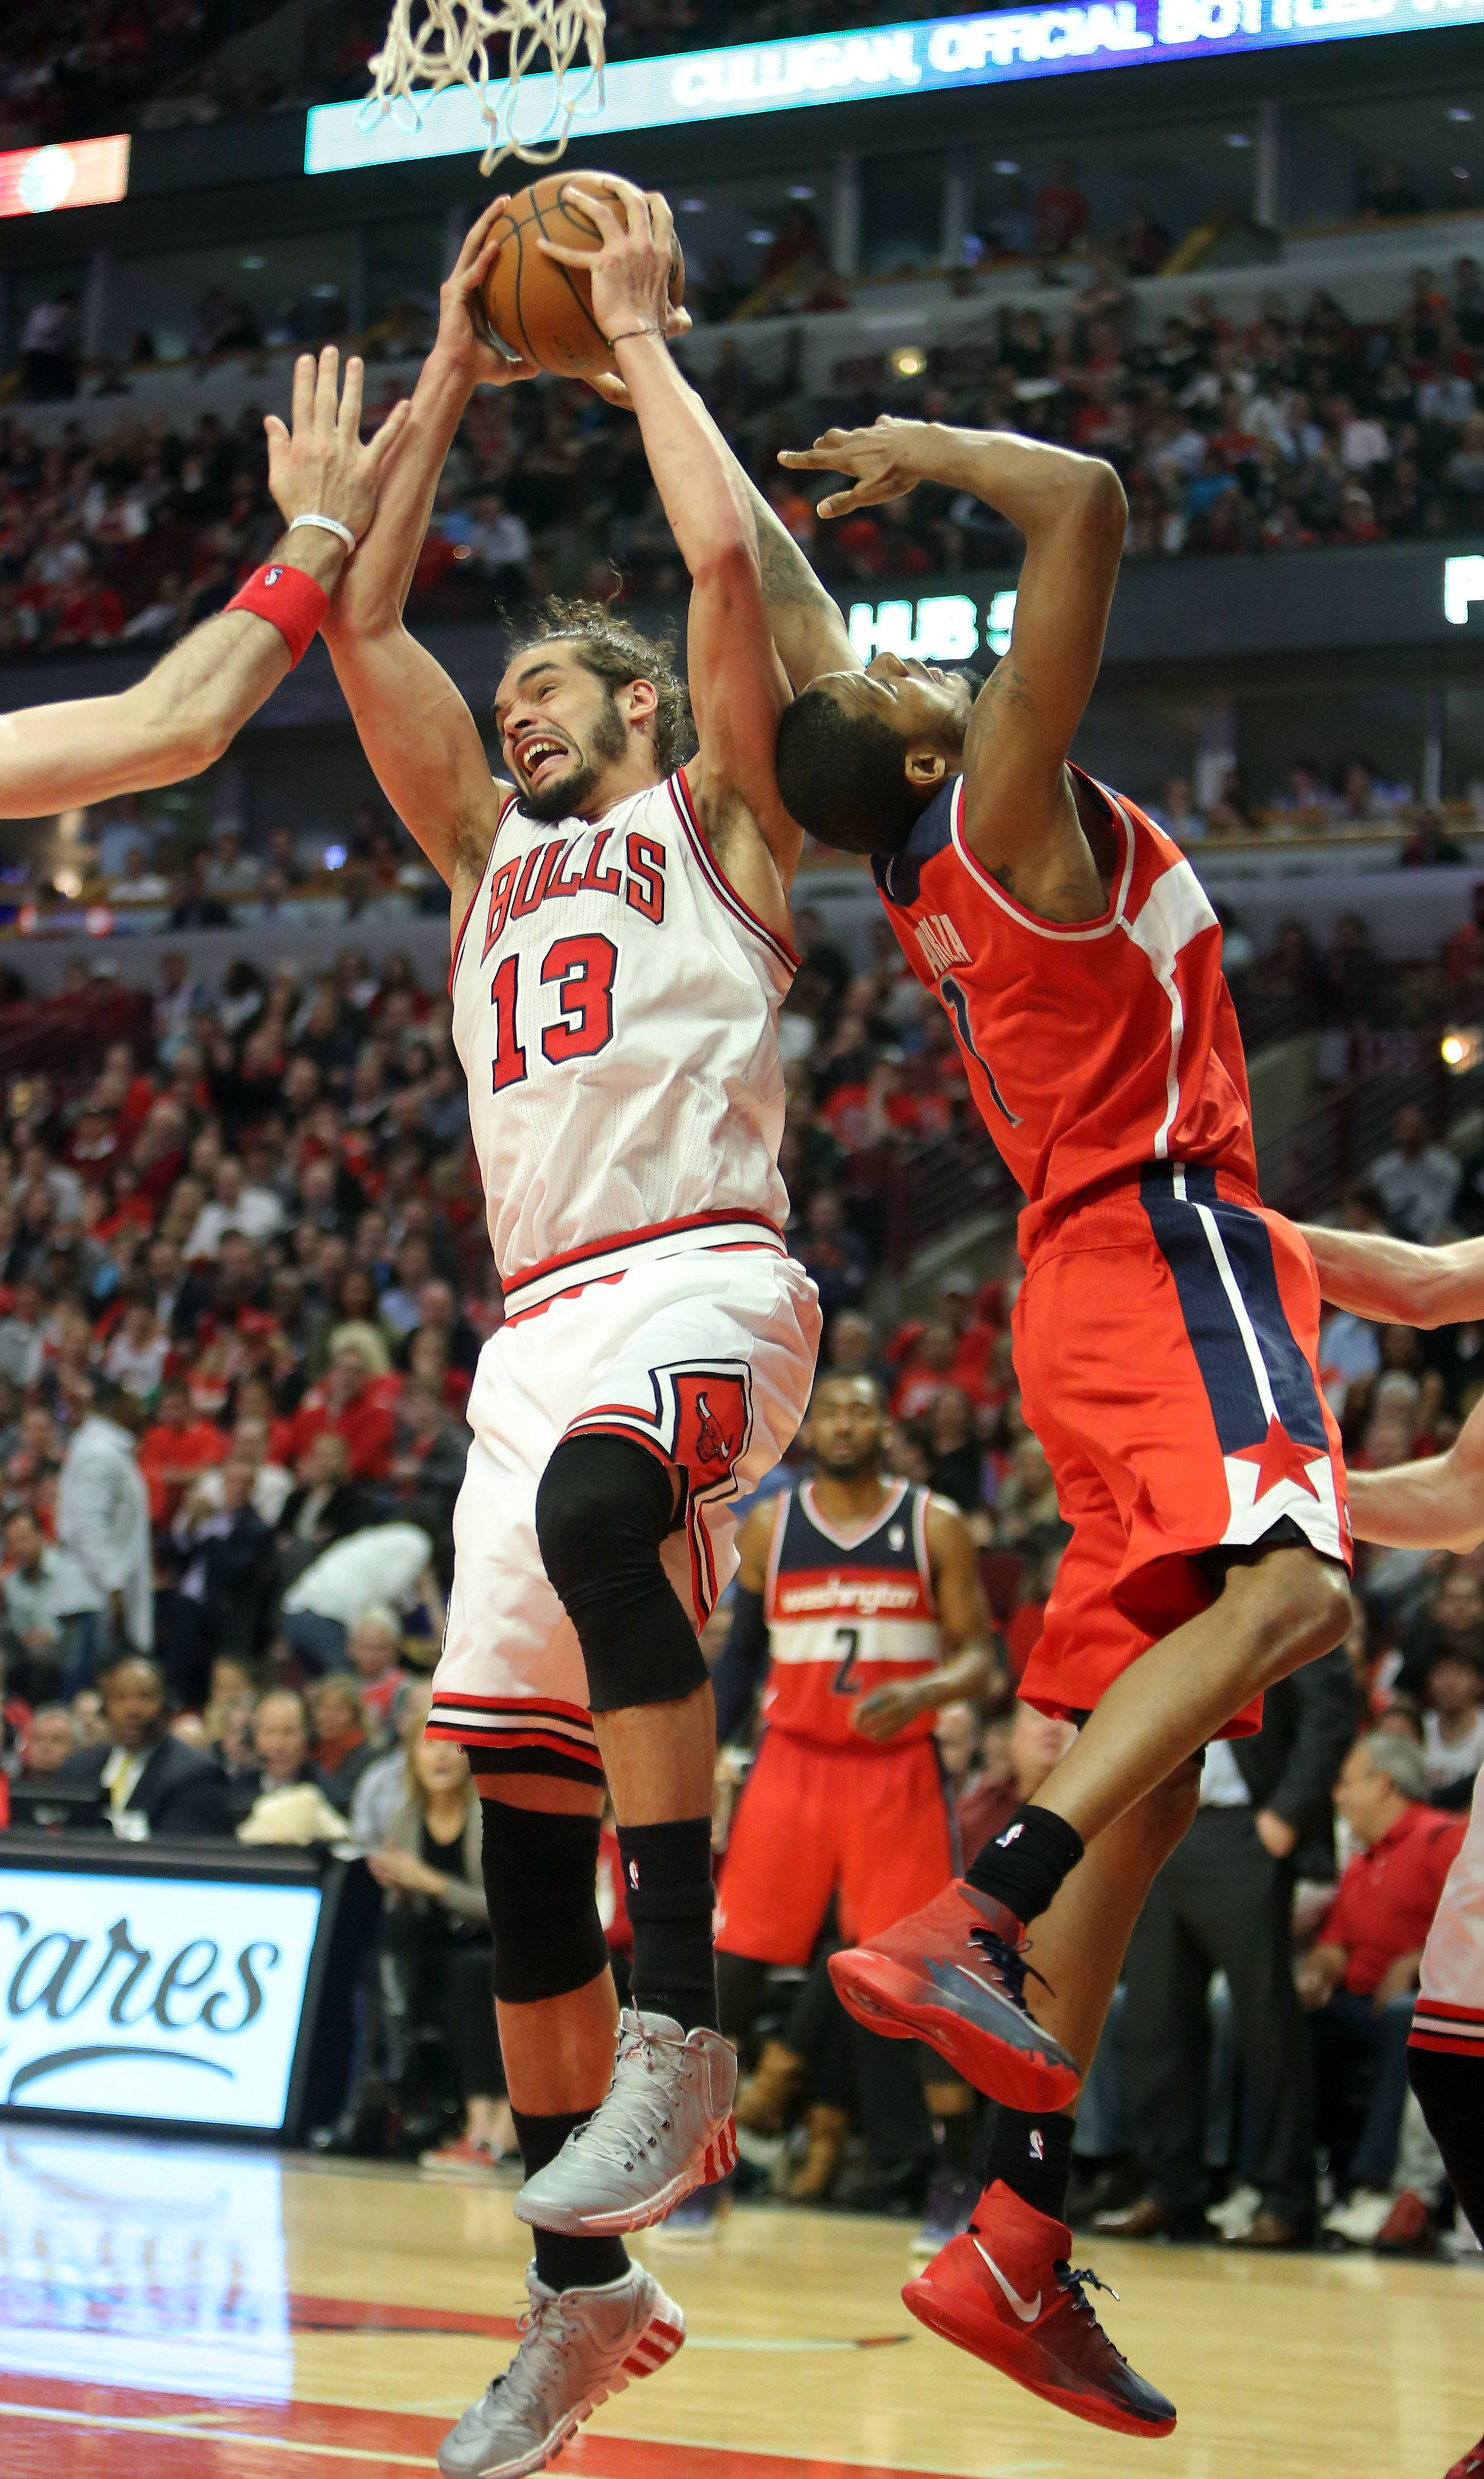 Chicago Bulls center Joakim Noah pulls down a rebound over Washington Wizards forward Trevor Ariza.